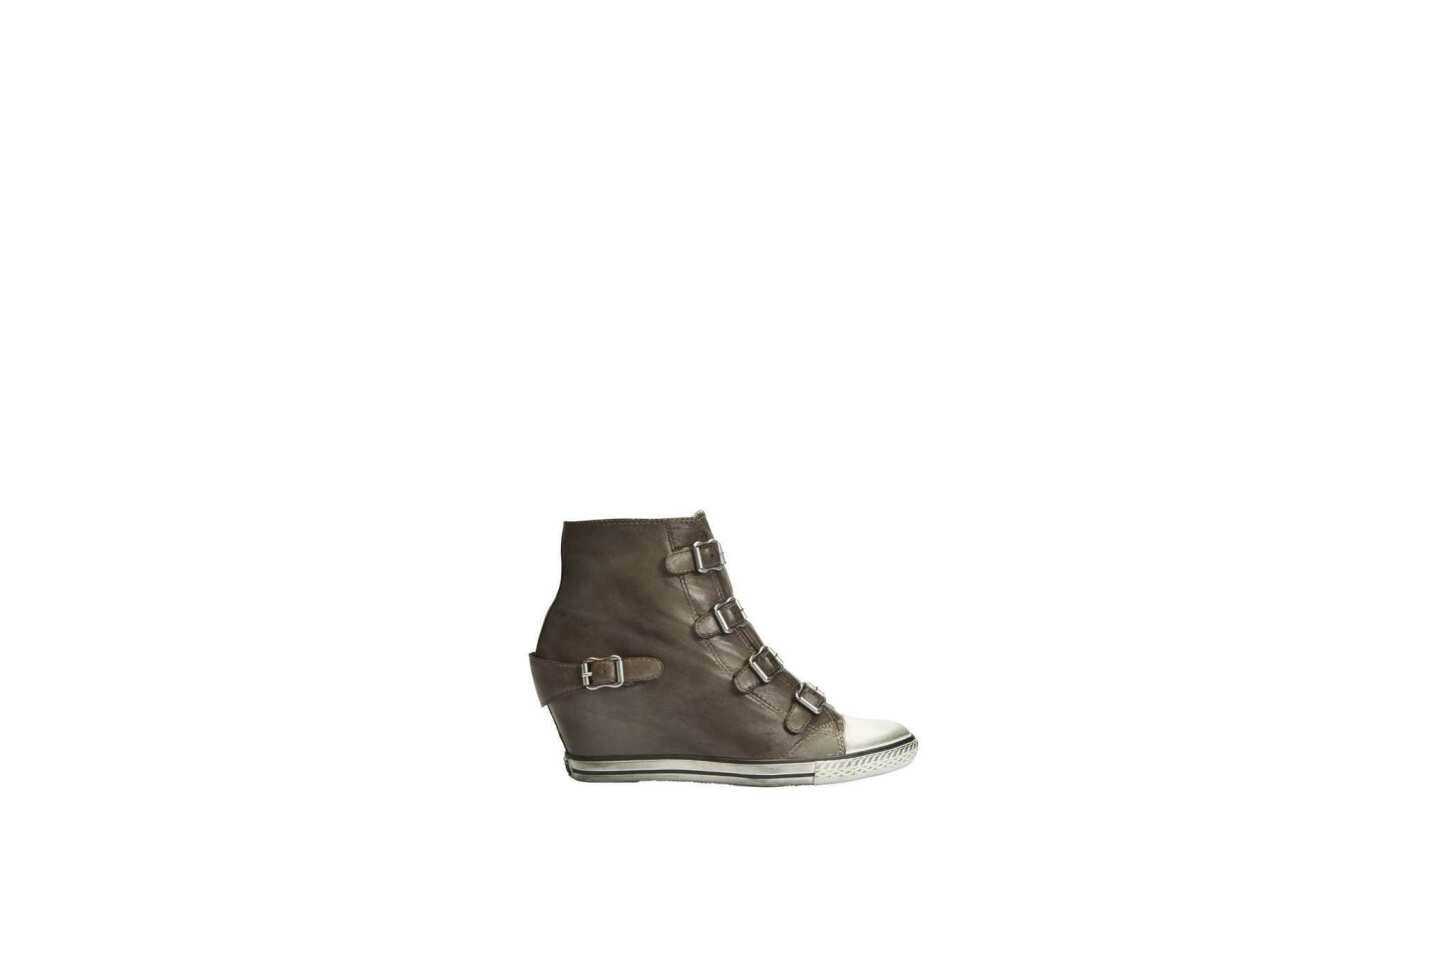 Ash Eagle nappa leather sneaker, $225, available at http://www.ashfootwearusa.com and Neiman Marcus, Intermix, Madison and American Rag.